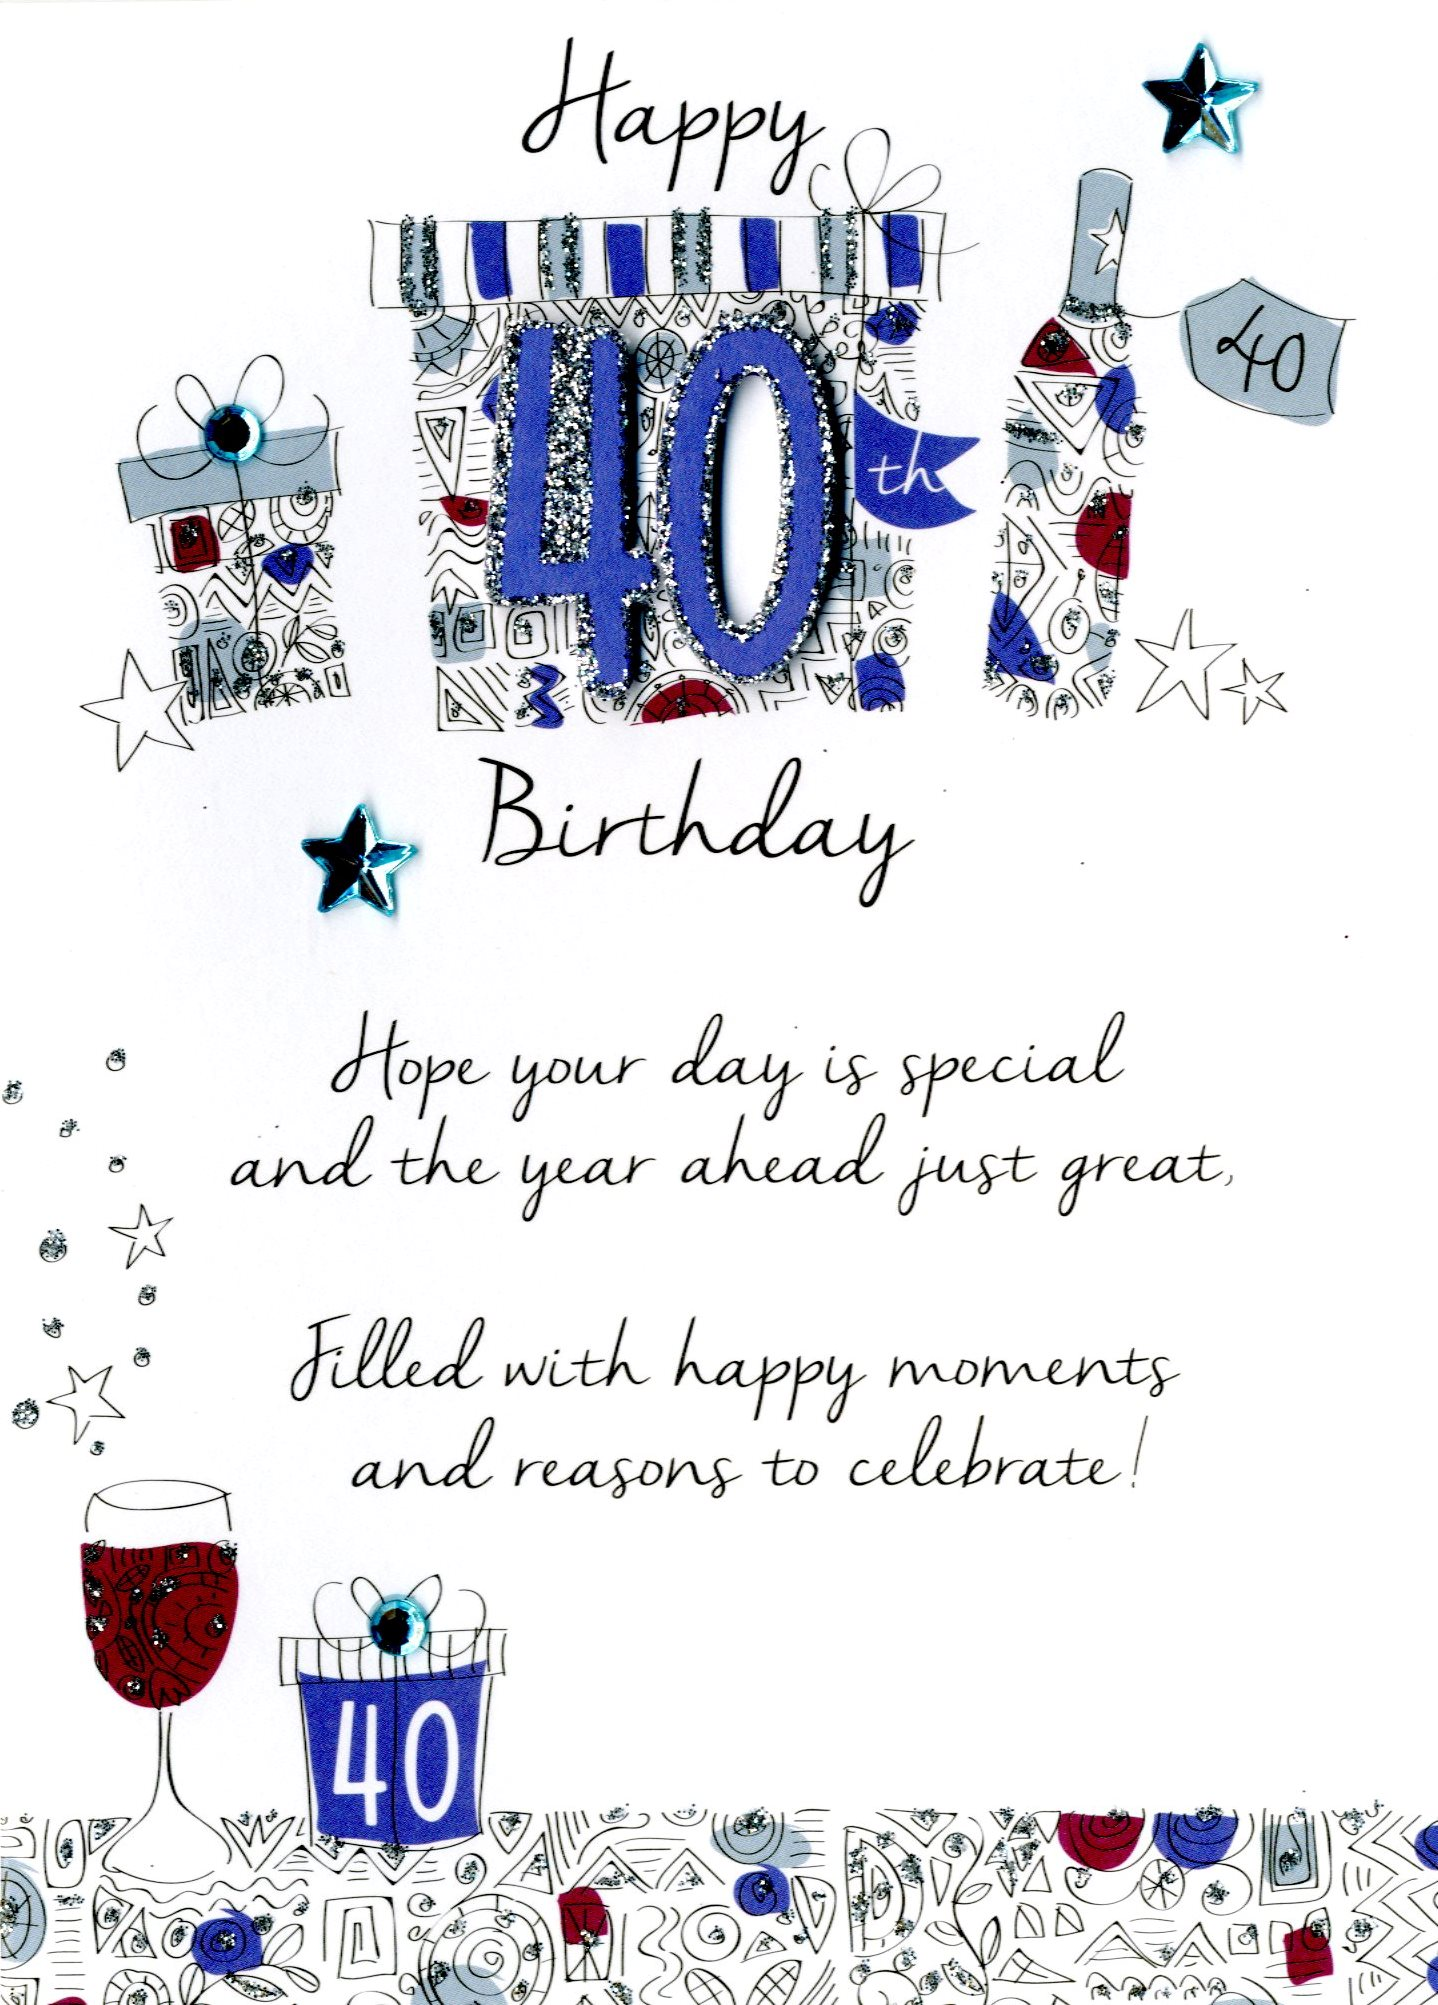 Male 40th birthday greeting card cards love kates male 40th birthday greeting card bookmarktalkfo Choice Image